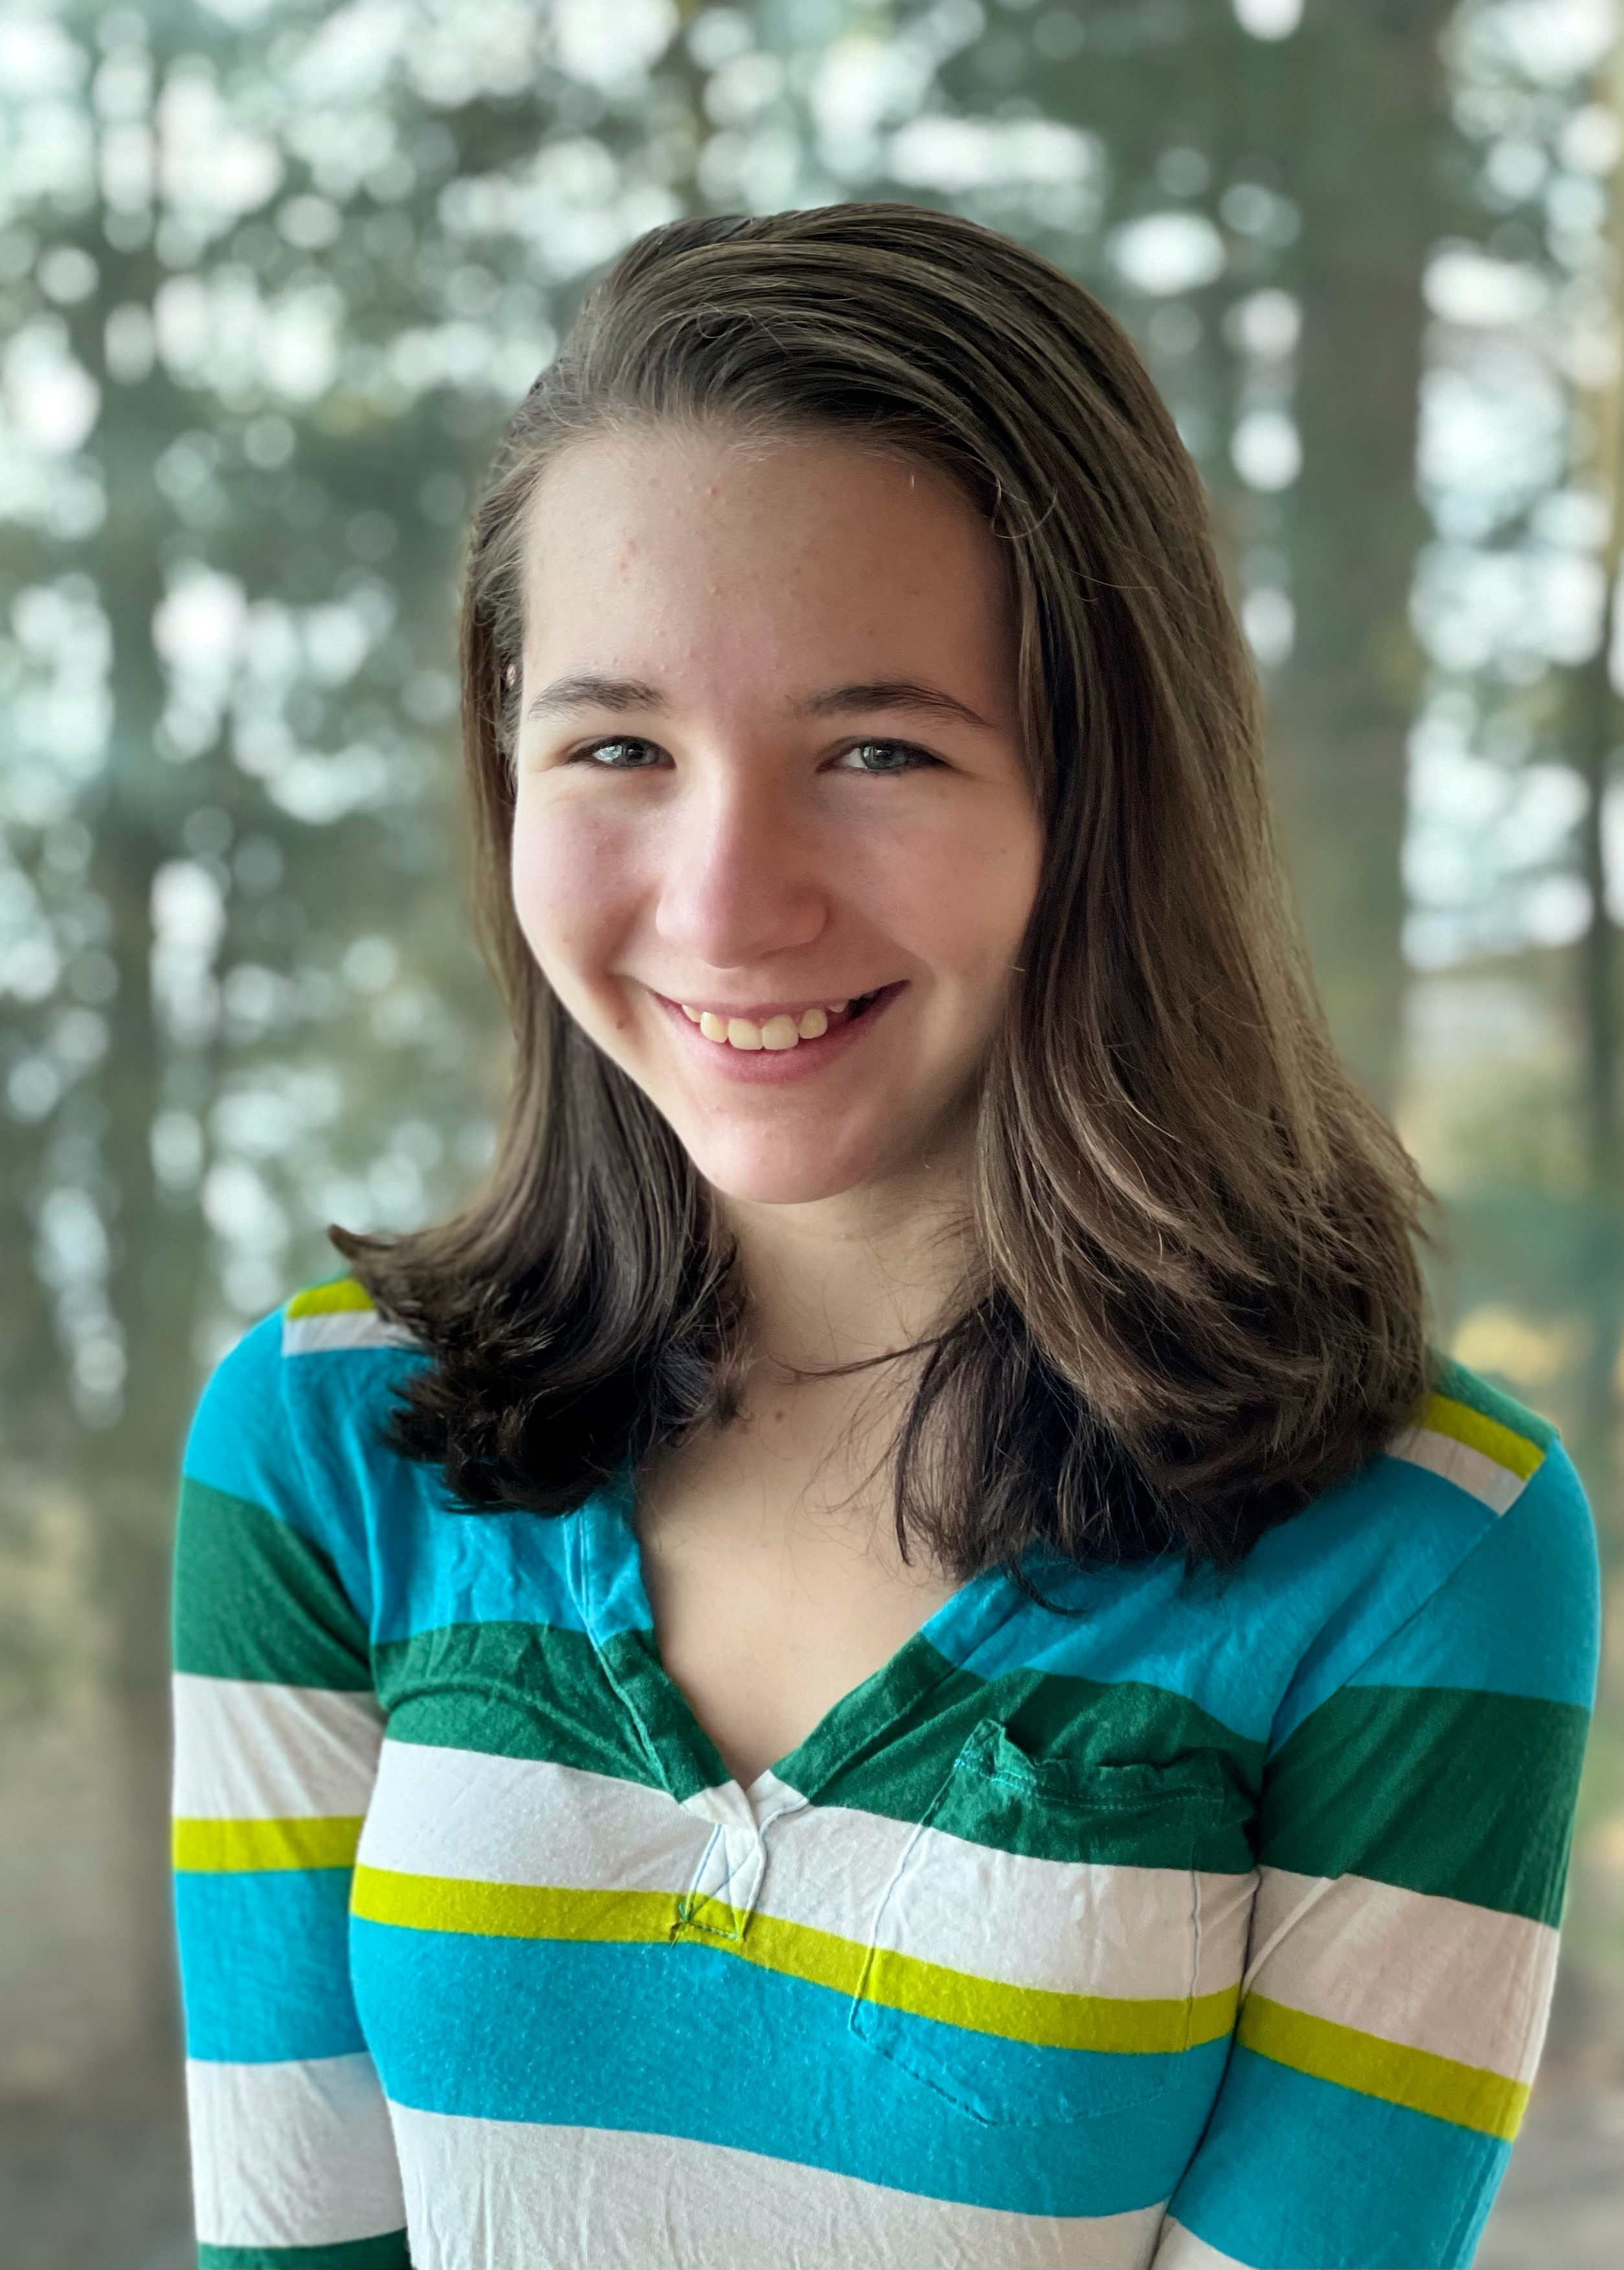 Talia Gibbs seen from the chest up, smiling at the camera with trees in the background.